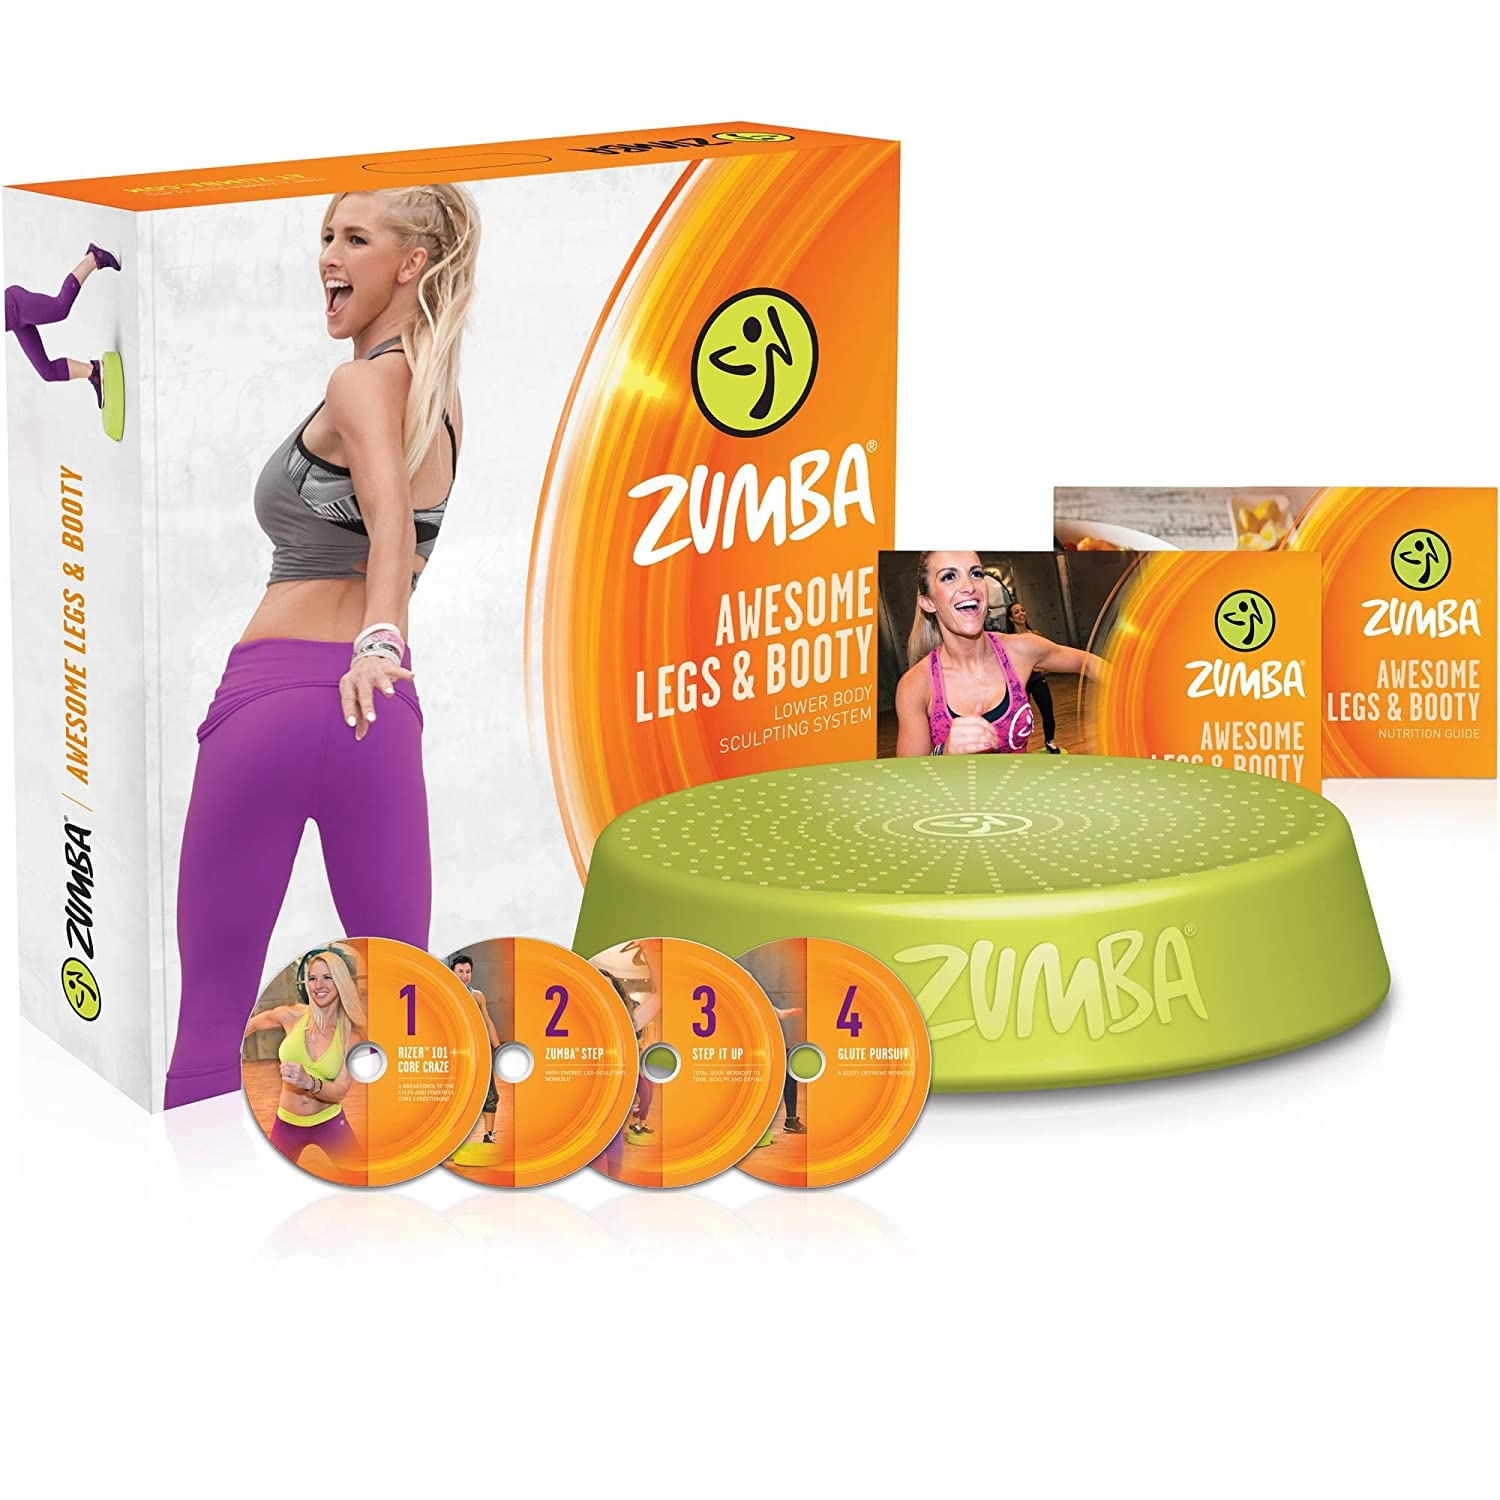 Zumba Exhilarate Nutrition Guide - Nutrition Ftempo